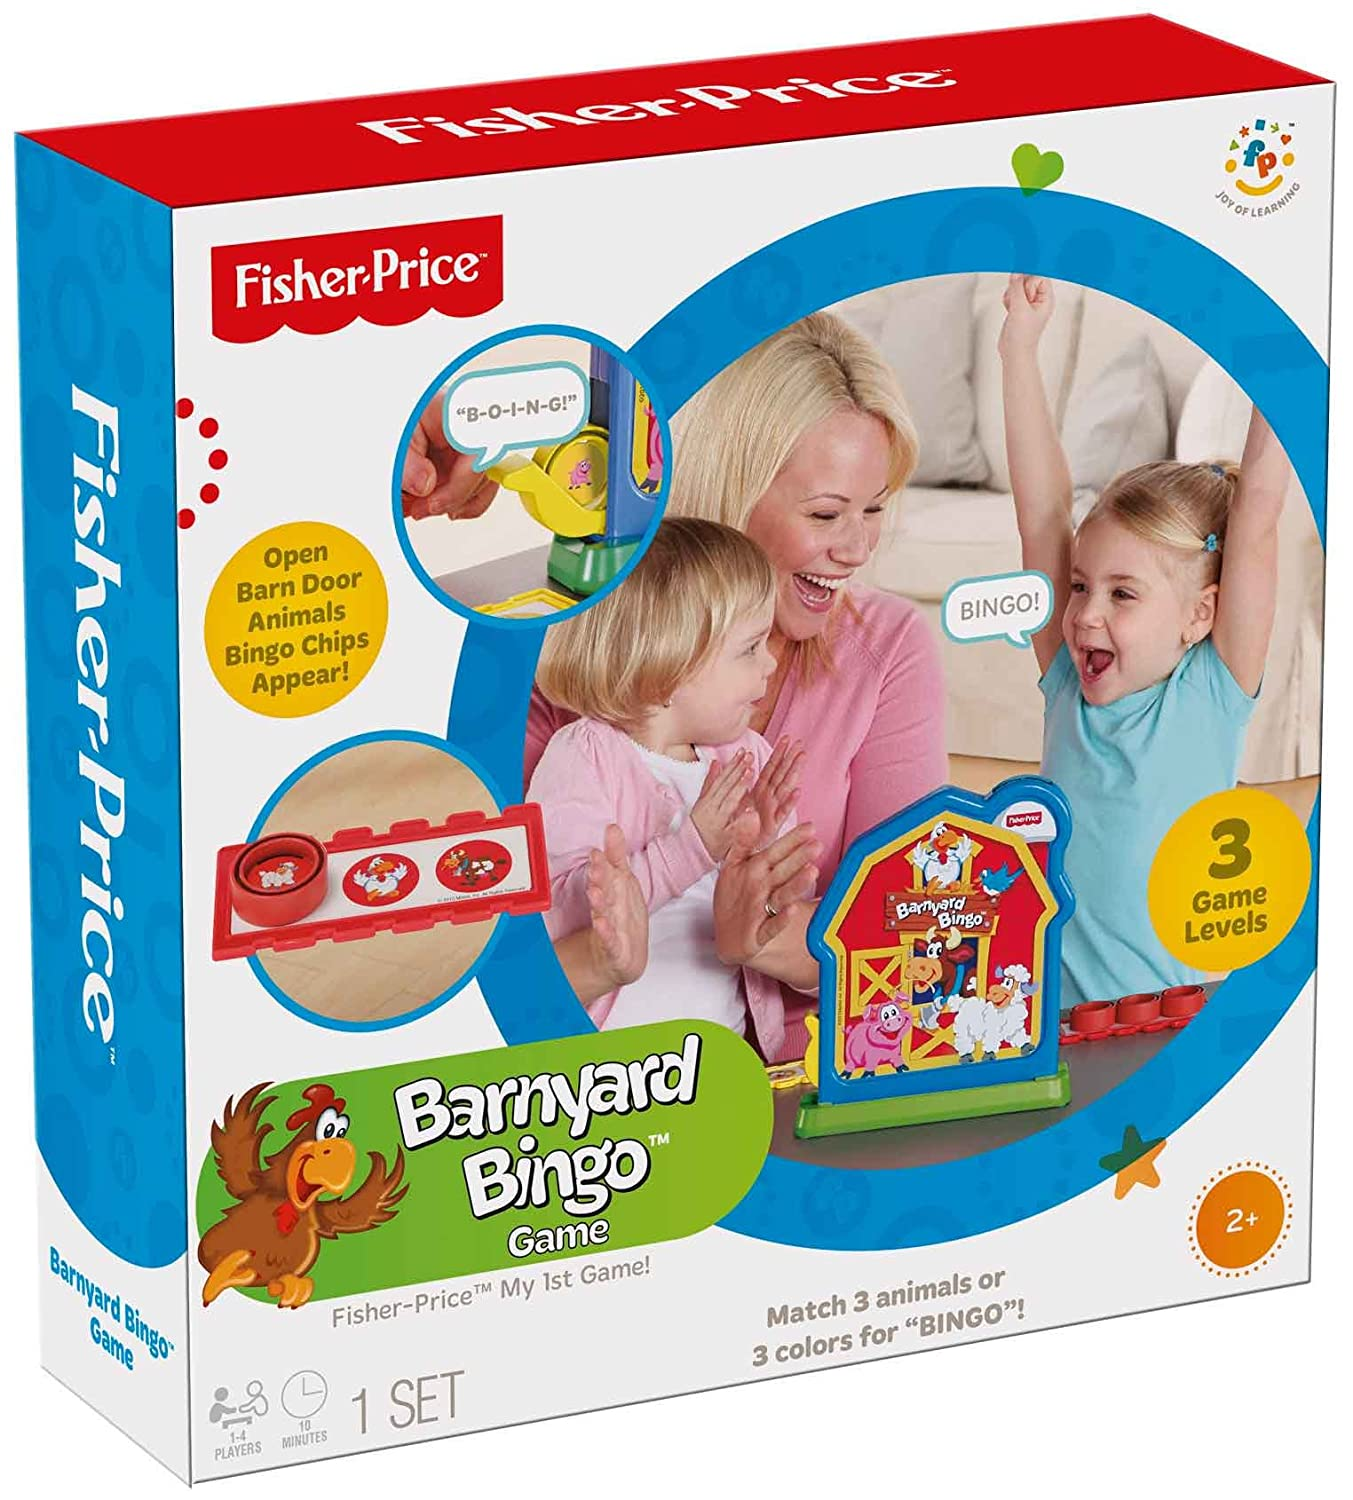 Amazon Fisher Price Barnyard Bingo Game Toys & Games